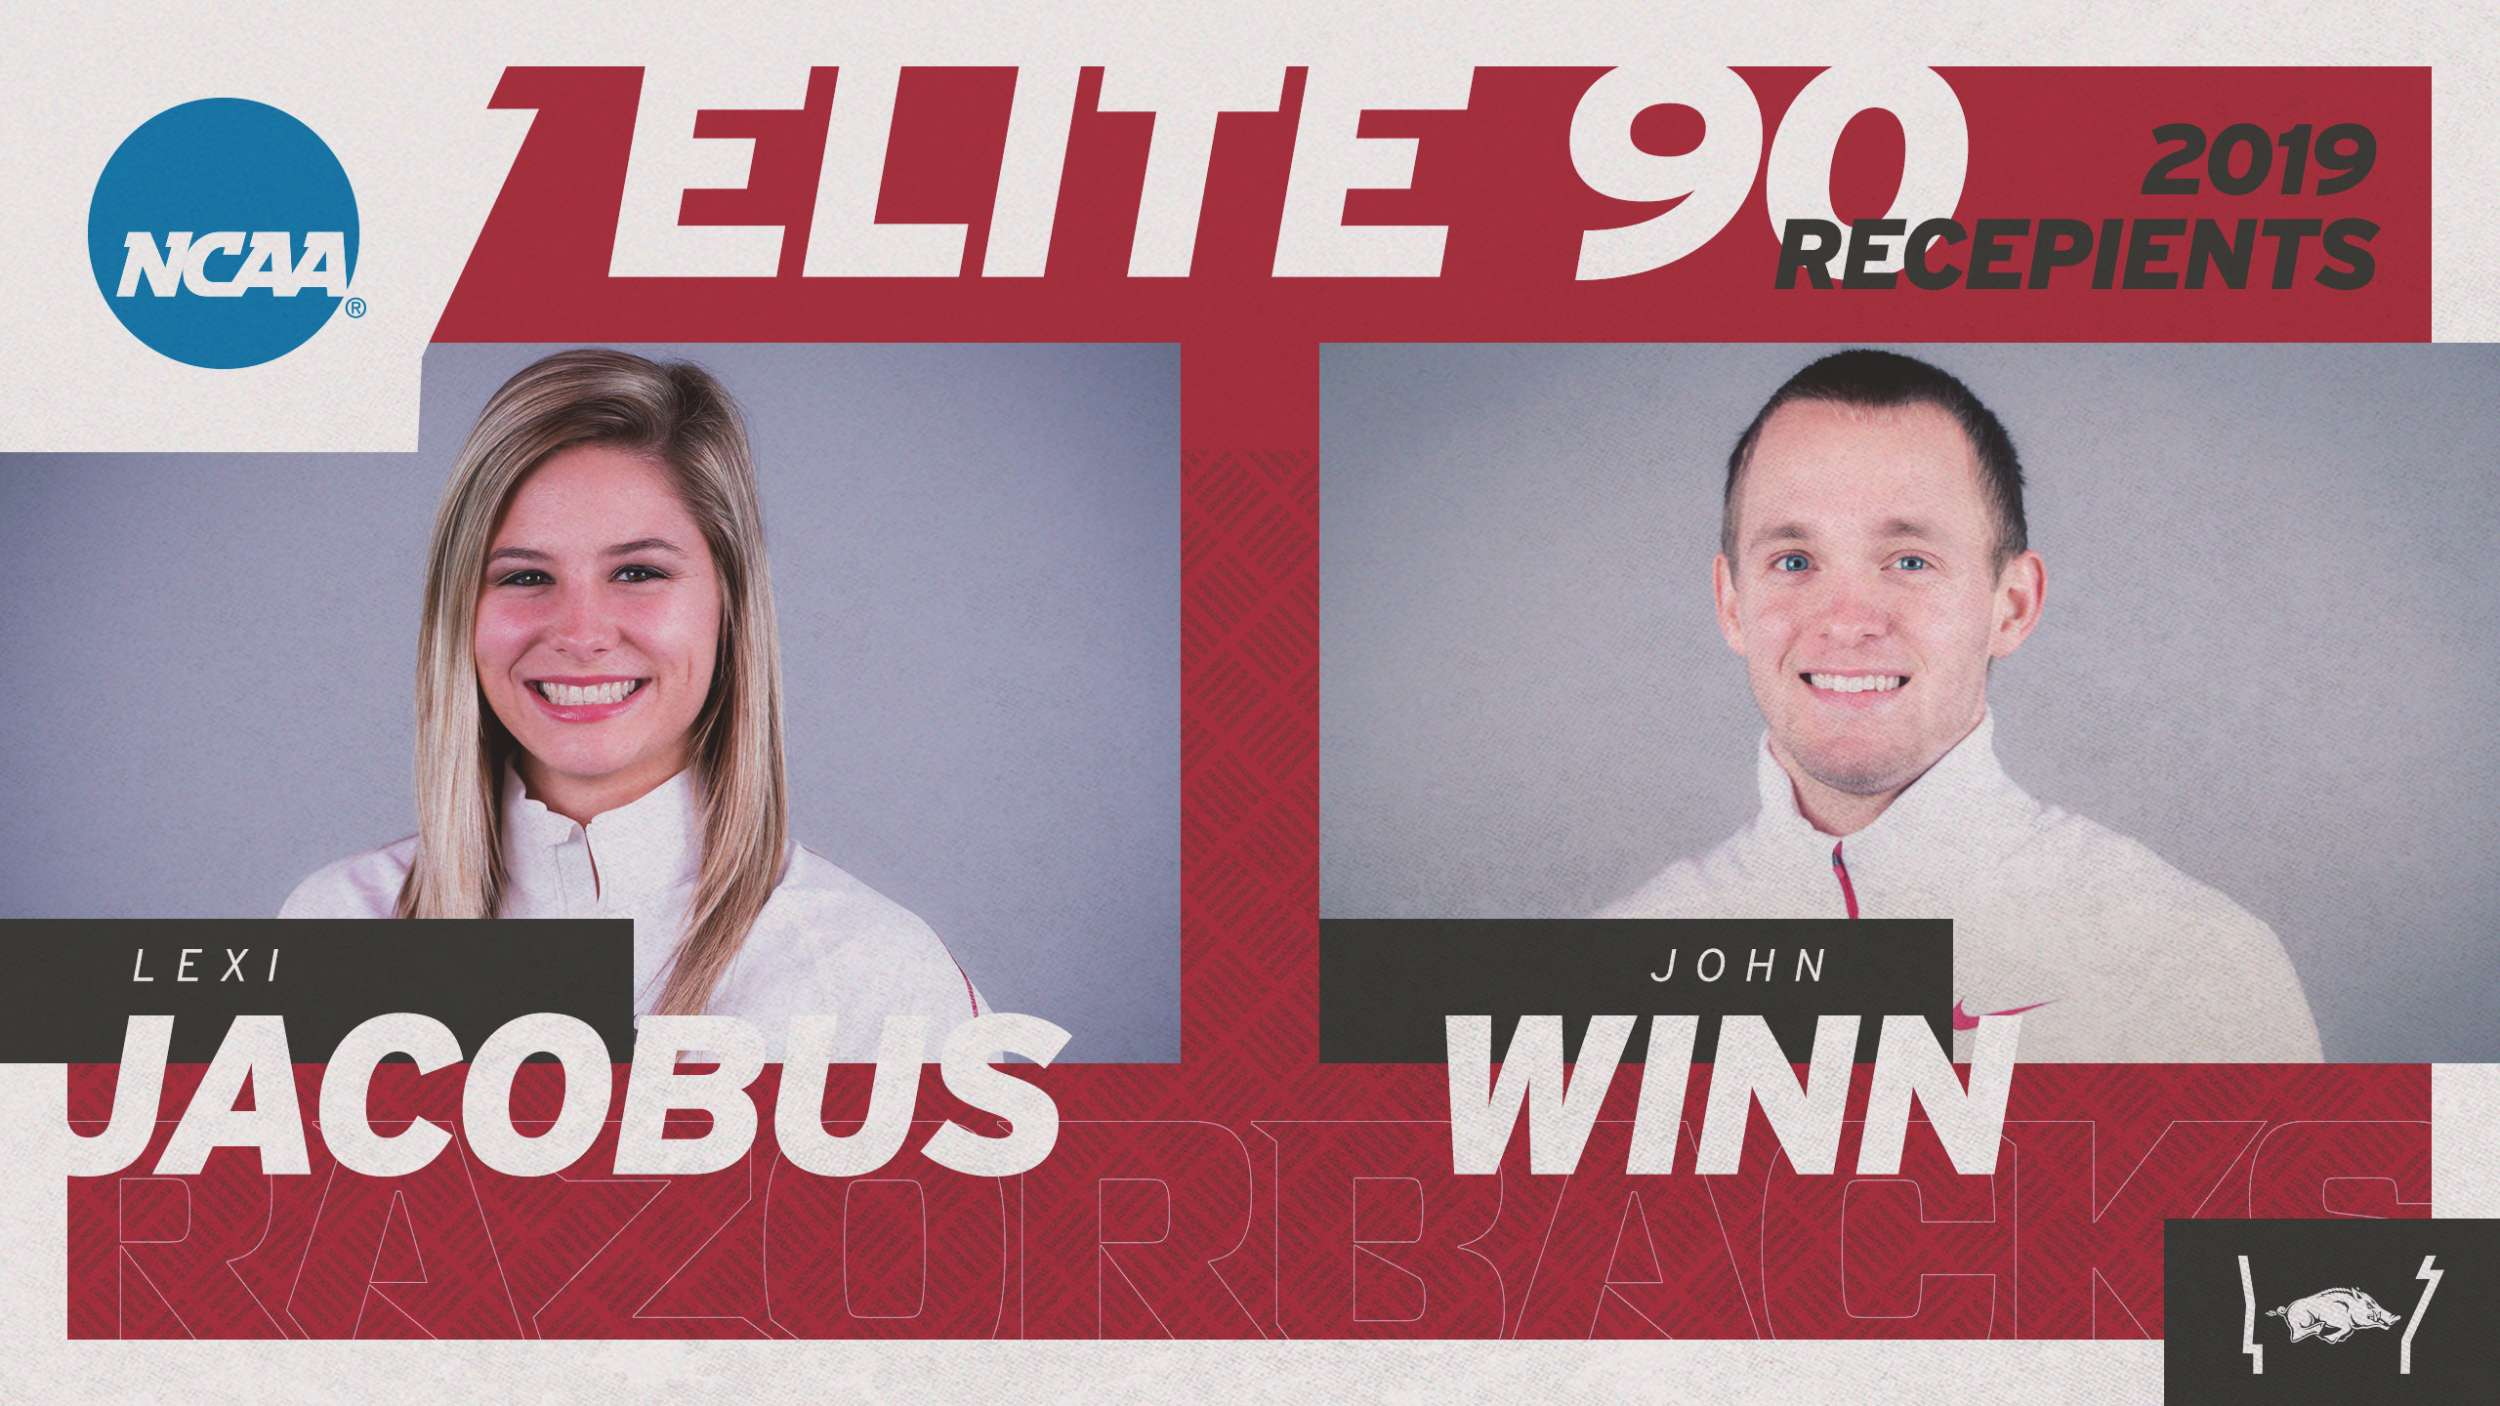 https://arkansasrazorbacks.com/wp-content/uploads/2019/06/Elite90_Lexi-John.jpg